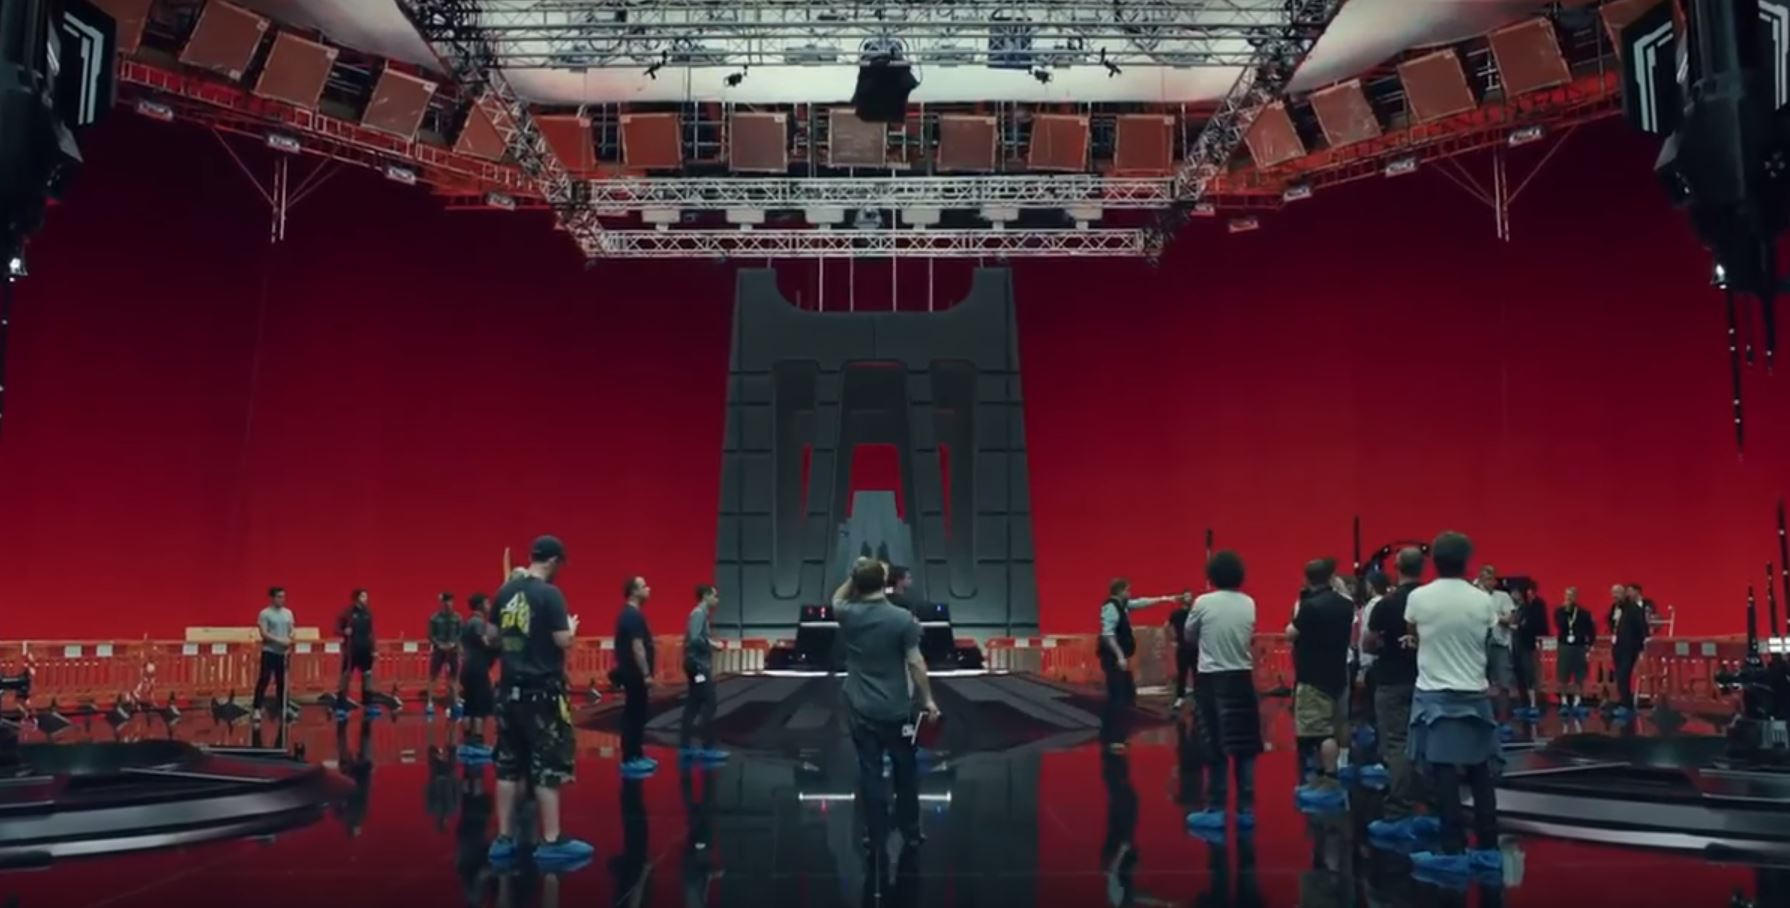 sala del trono di snoke the last jedi video dietro le quinte rian johnson